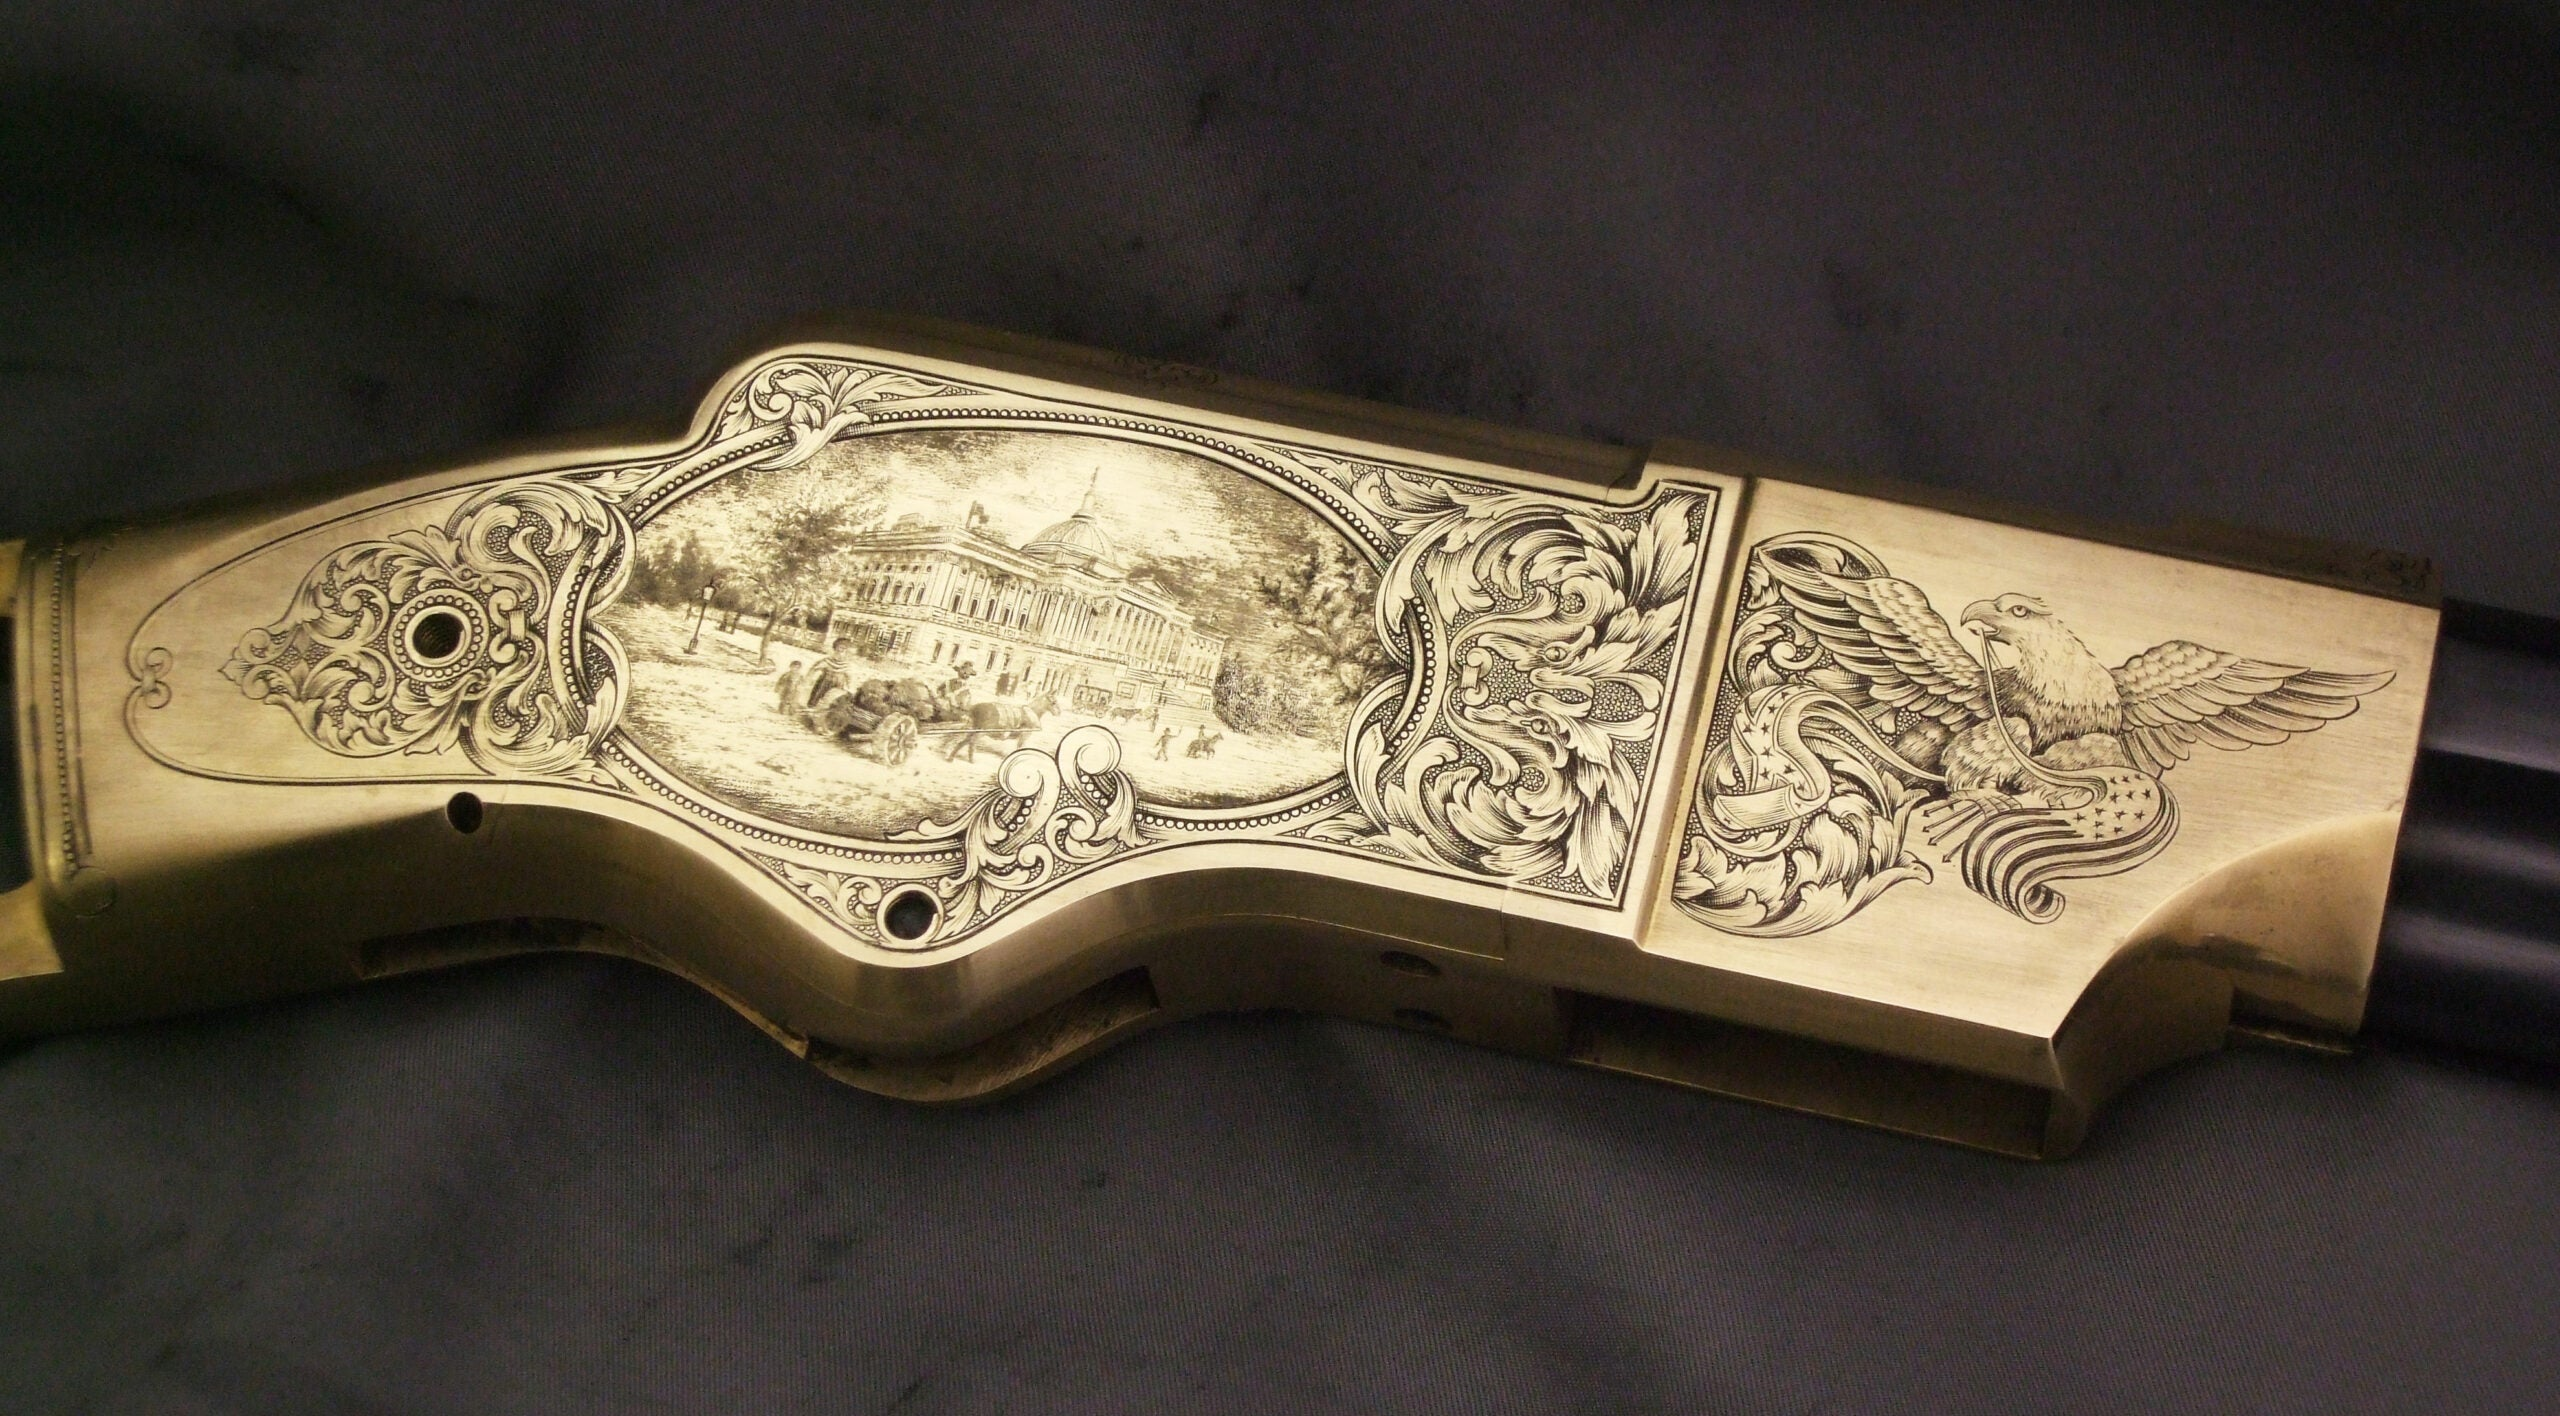 The Gun Art of Master Engraver Lee Griffiths